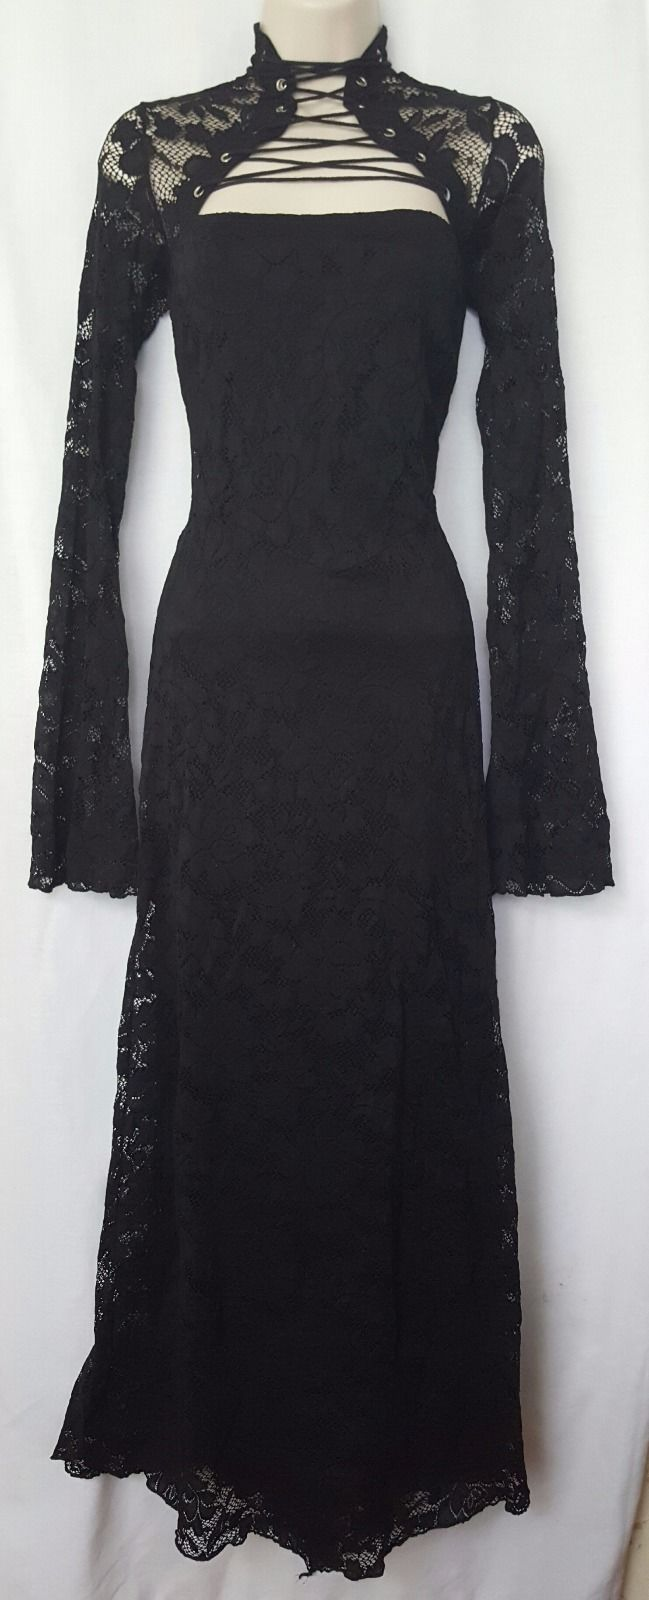 LIP SERVICE (Hot Topic) In Memory Of Disintegrated Lace long dress #59-91-HT